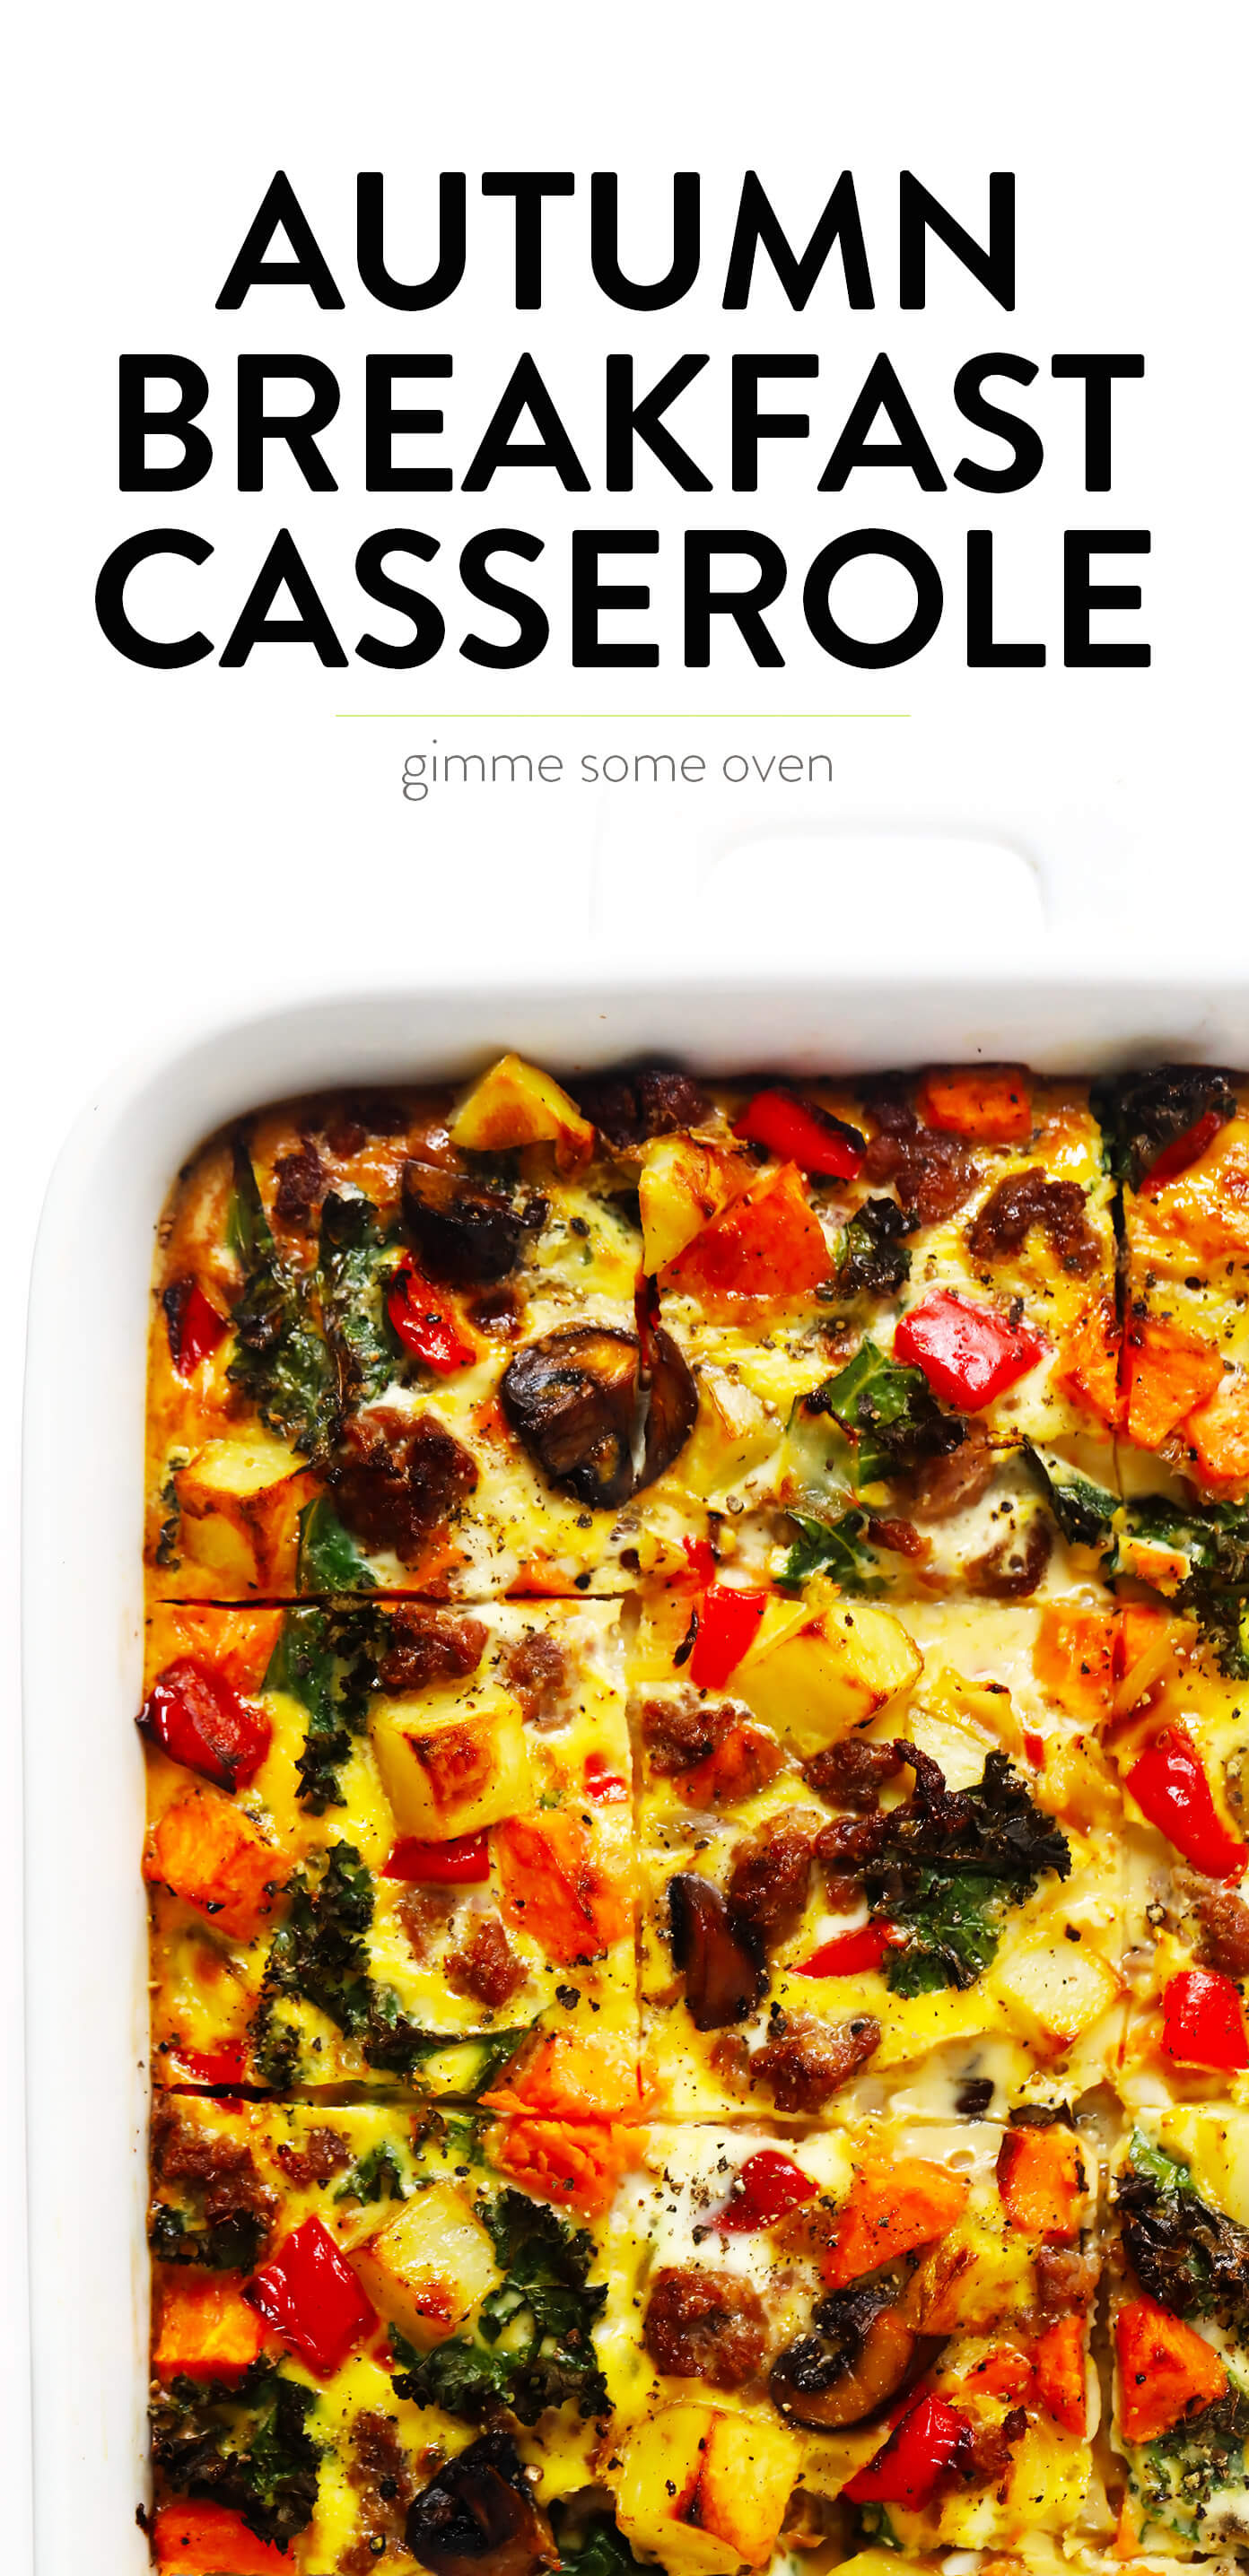 Cozy Autumn Breakfast Casserole Recipe from Gimme Some Oven